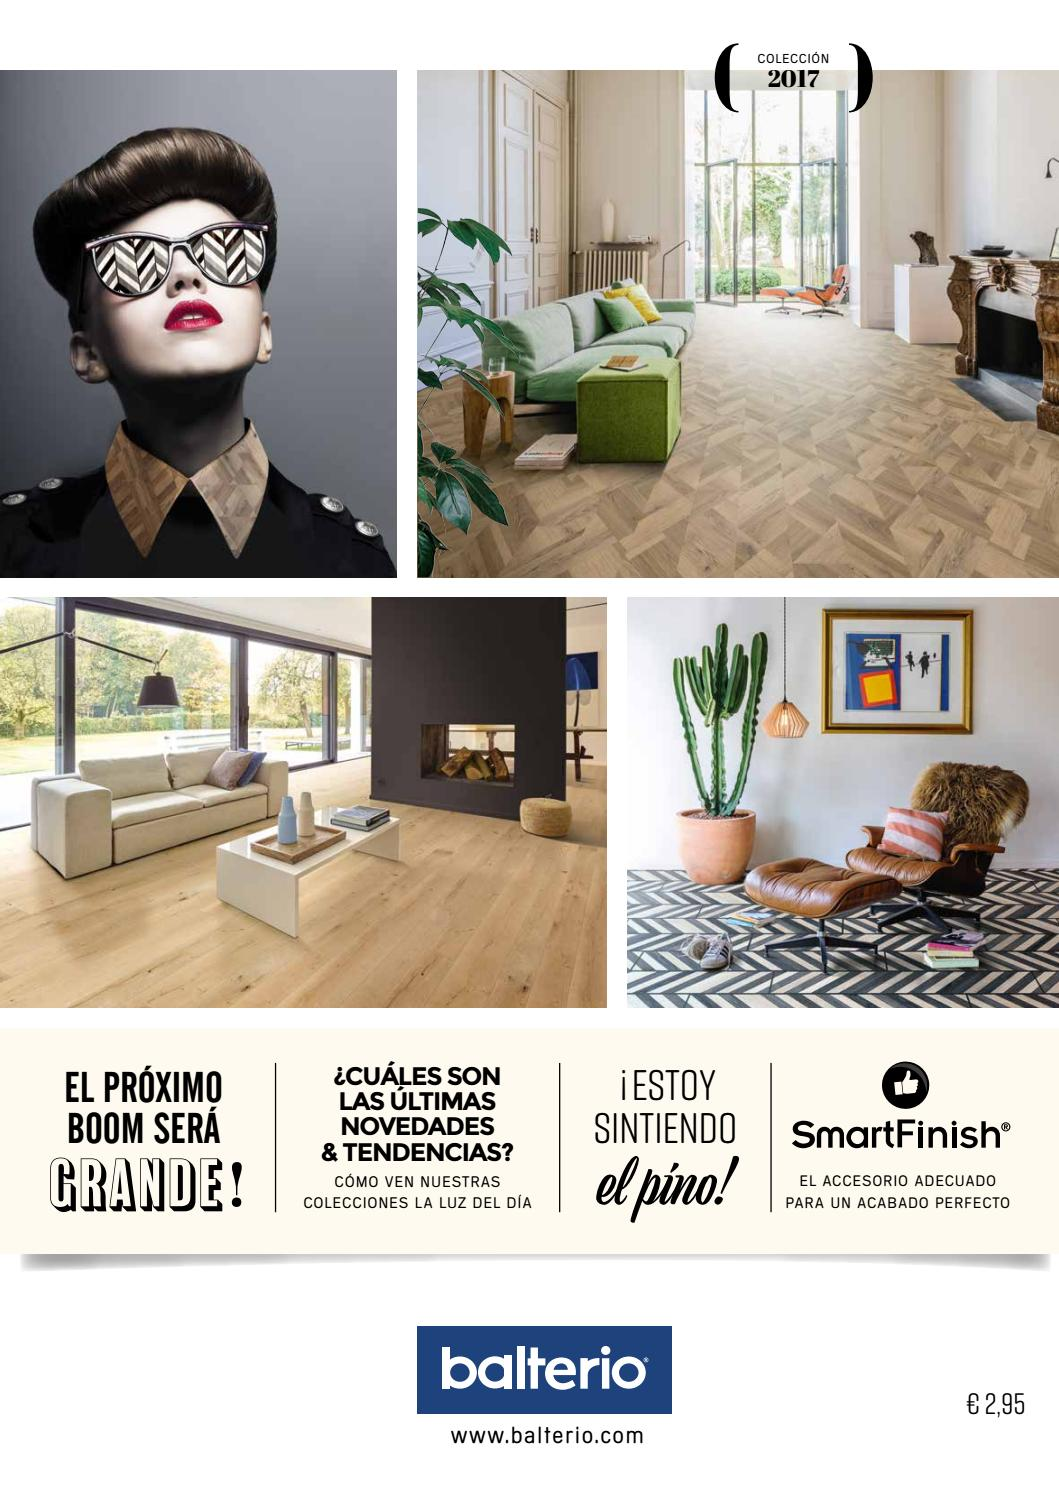 Catalogo balterio 2017 by Vicente Sanz Maia - issuu